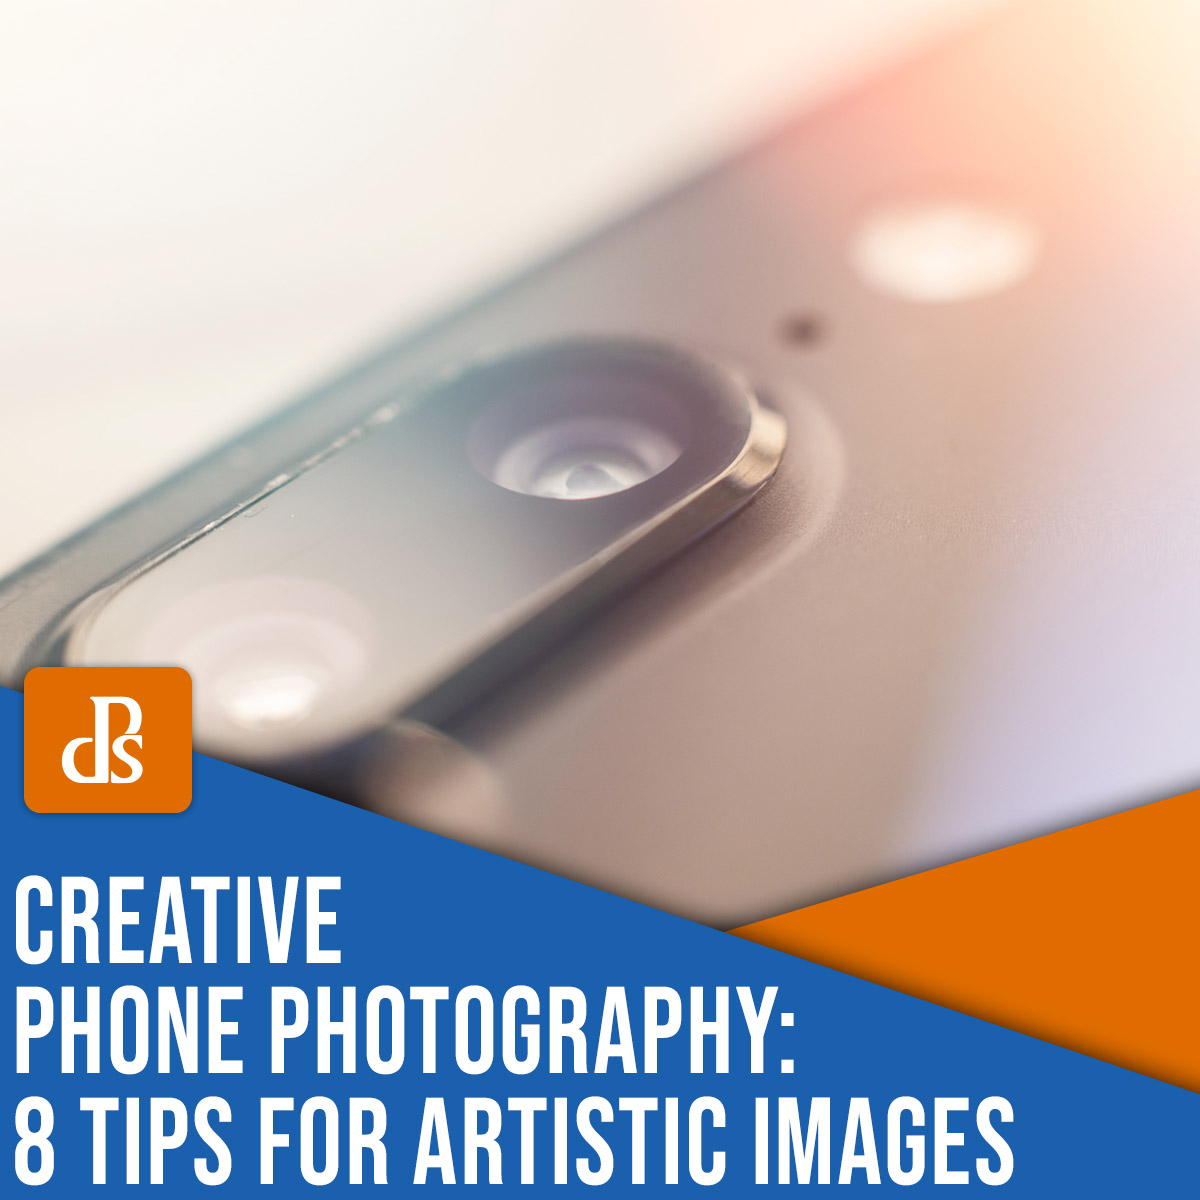 creative phone photography: 8 tips for artistic images